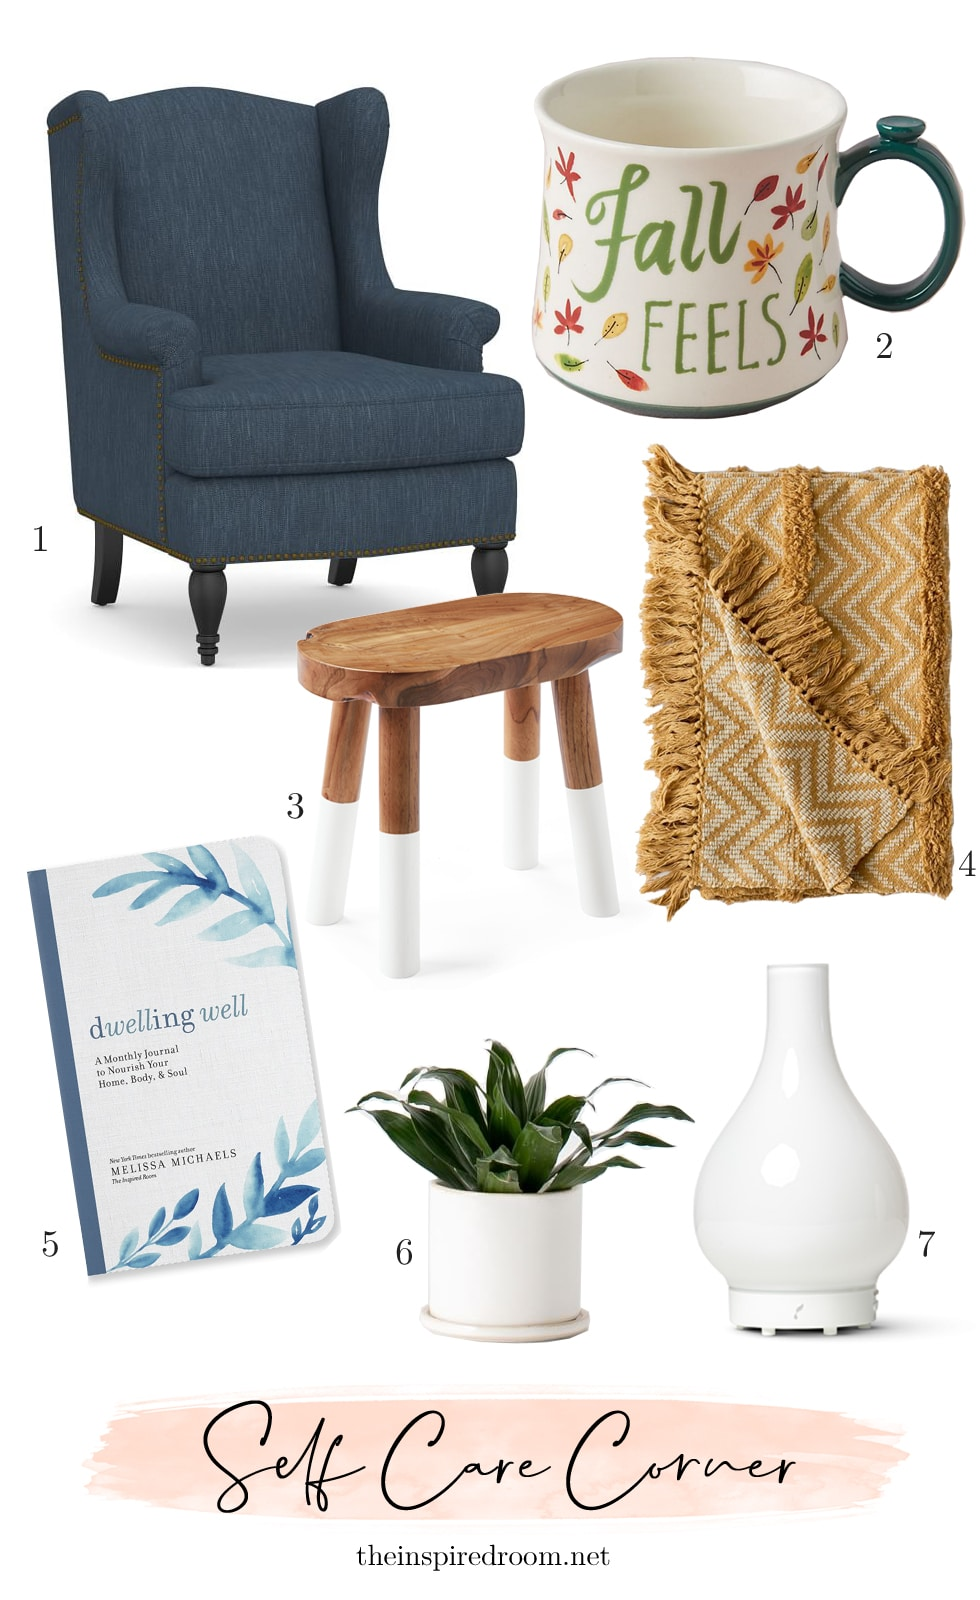 Cozy Self-Care Corner Must-Haves